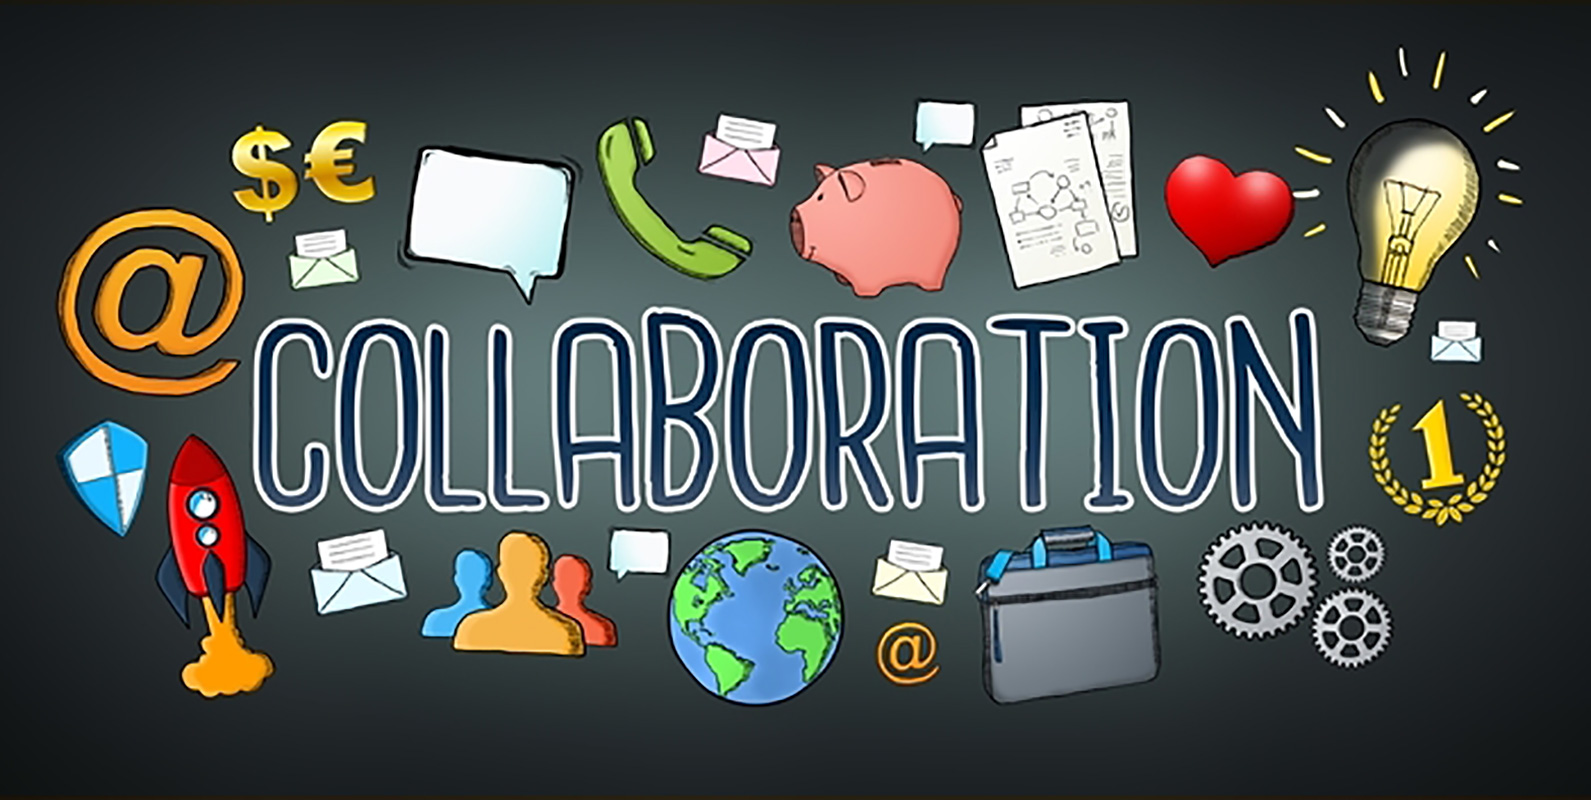 2018 - a Year of Collaboration